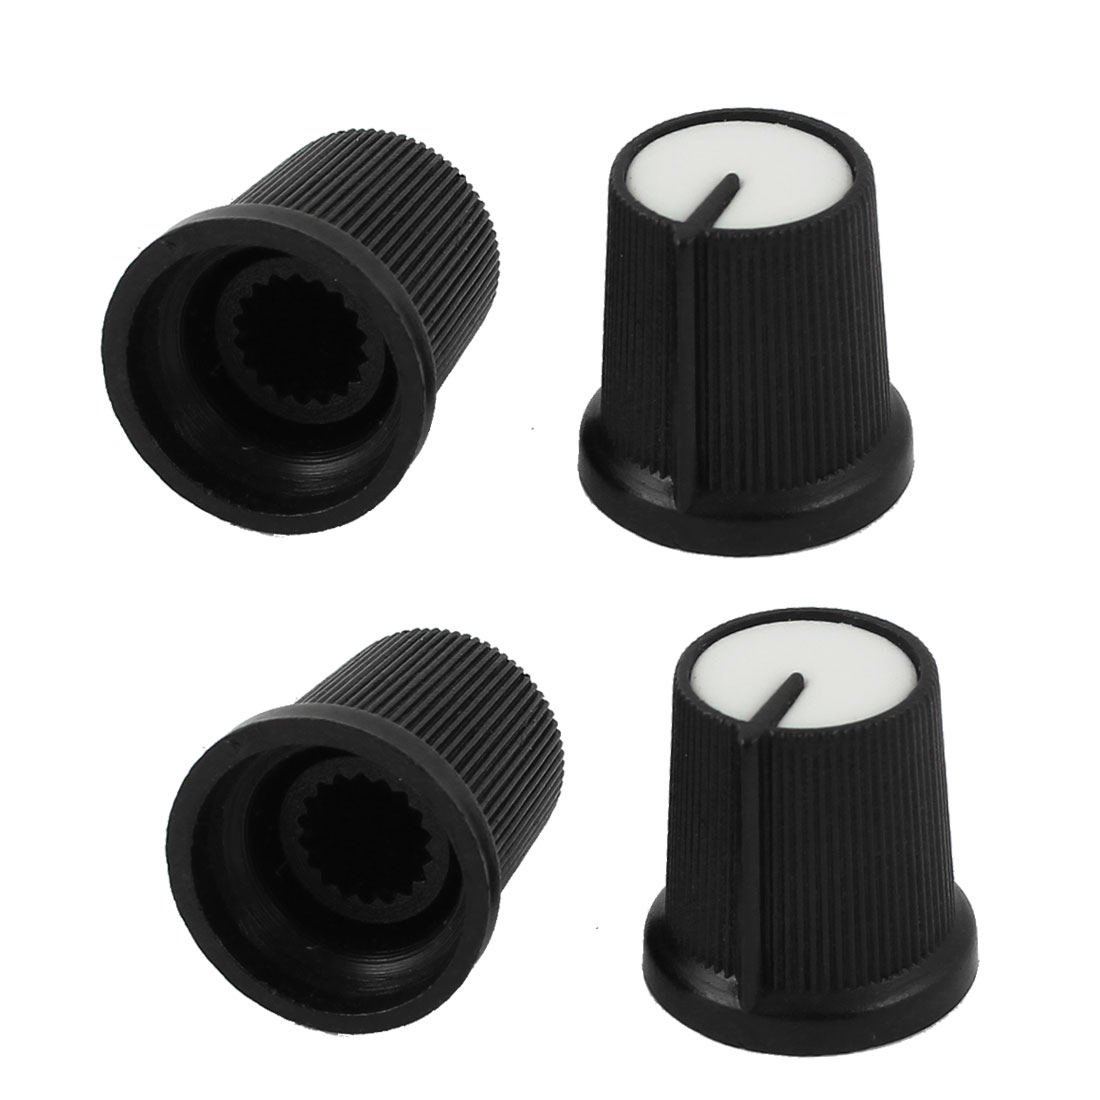 4pcs Plastic 5.5mm Knurled Shaft Taper Volume Knob Cap for Potentiometer Pot